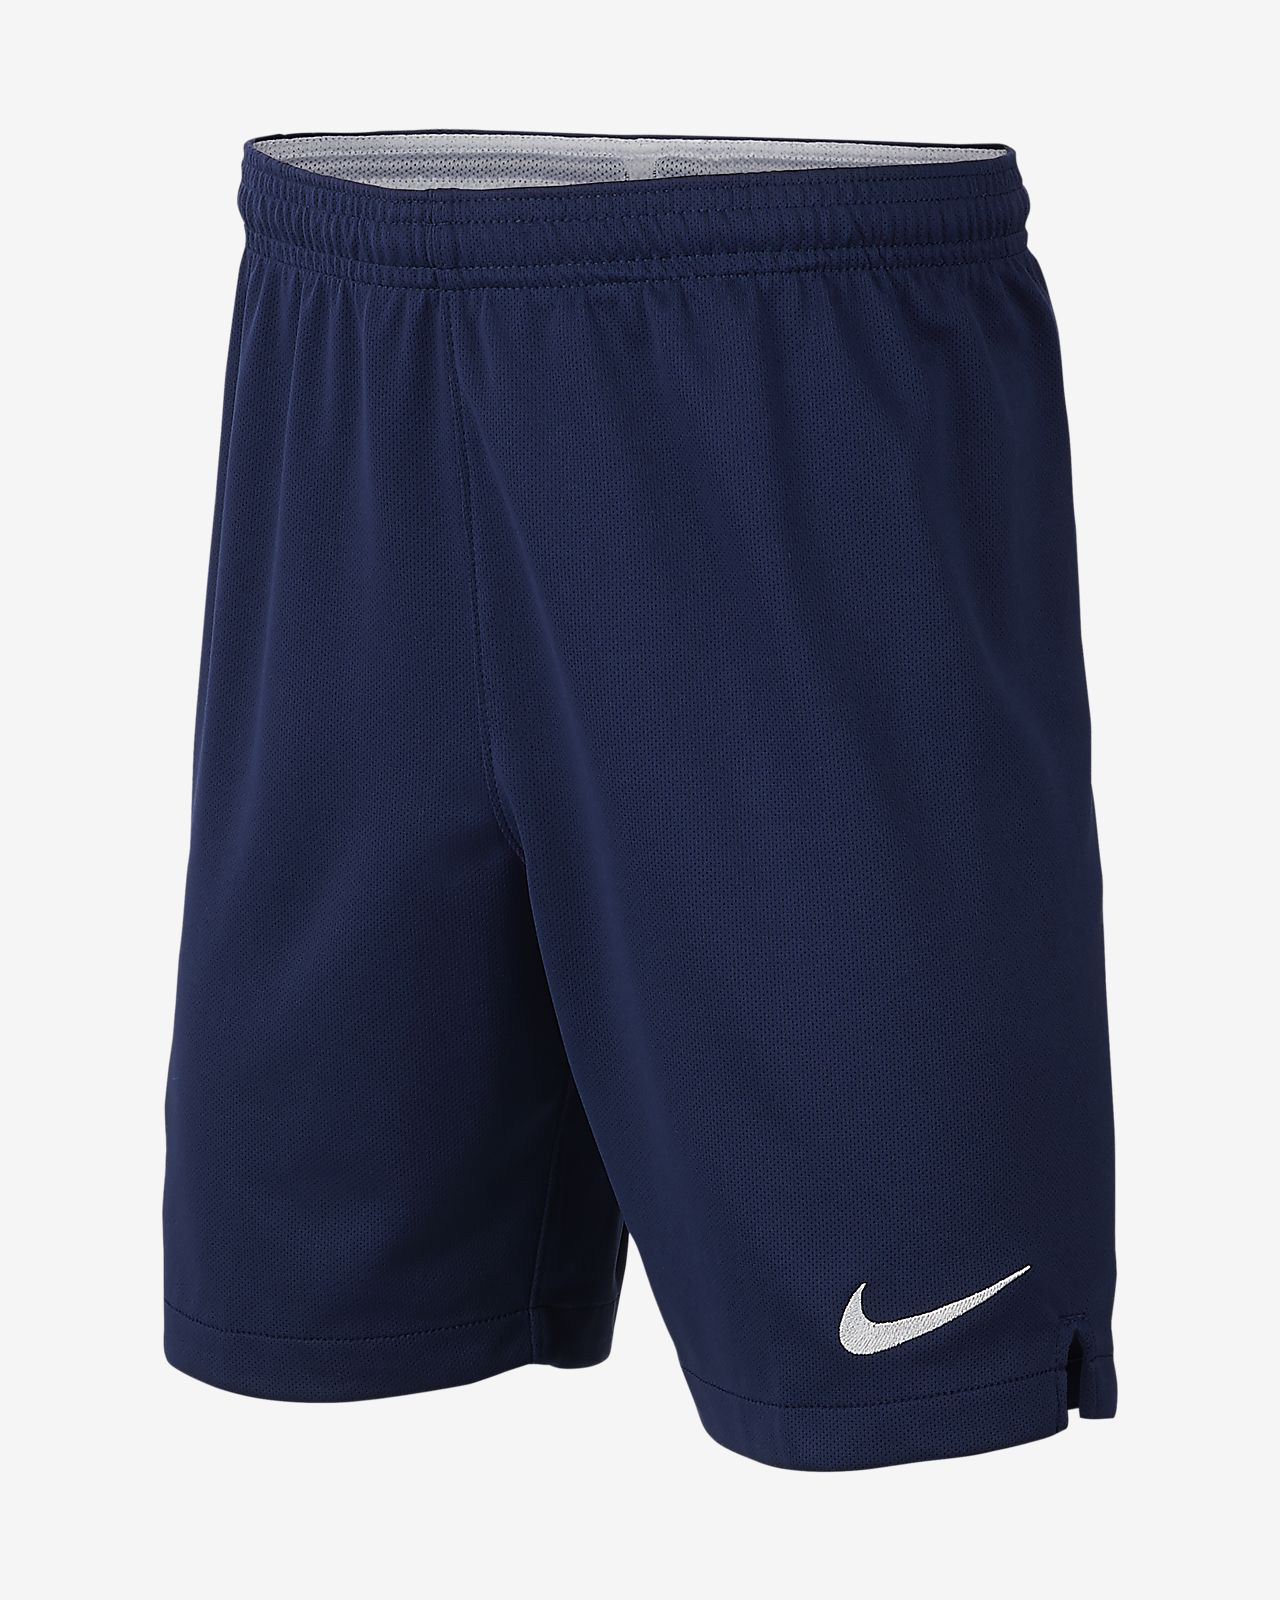 Tottenham Hotspur 2019/20 Stadium Home/Away Kids' Football Shorts